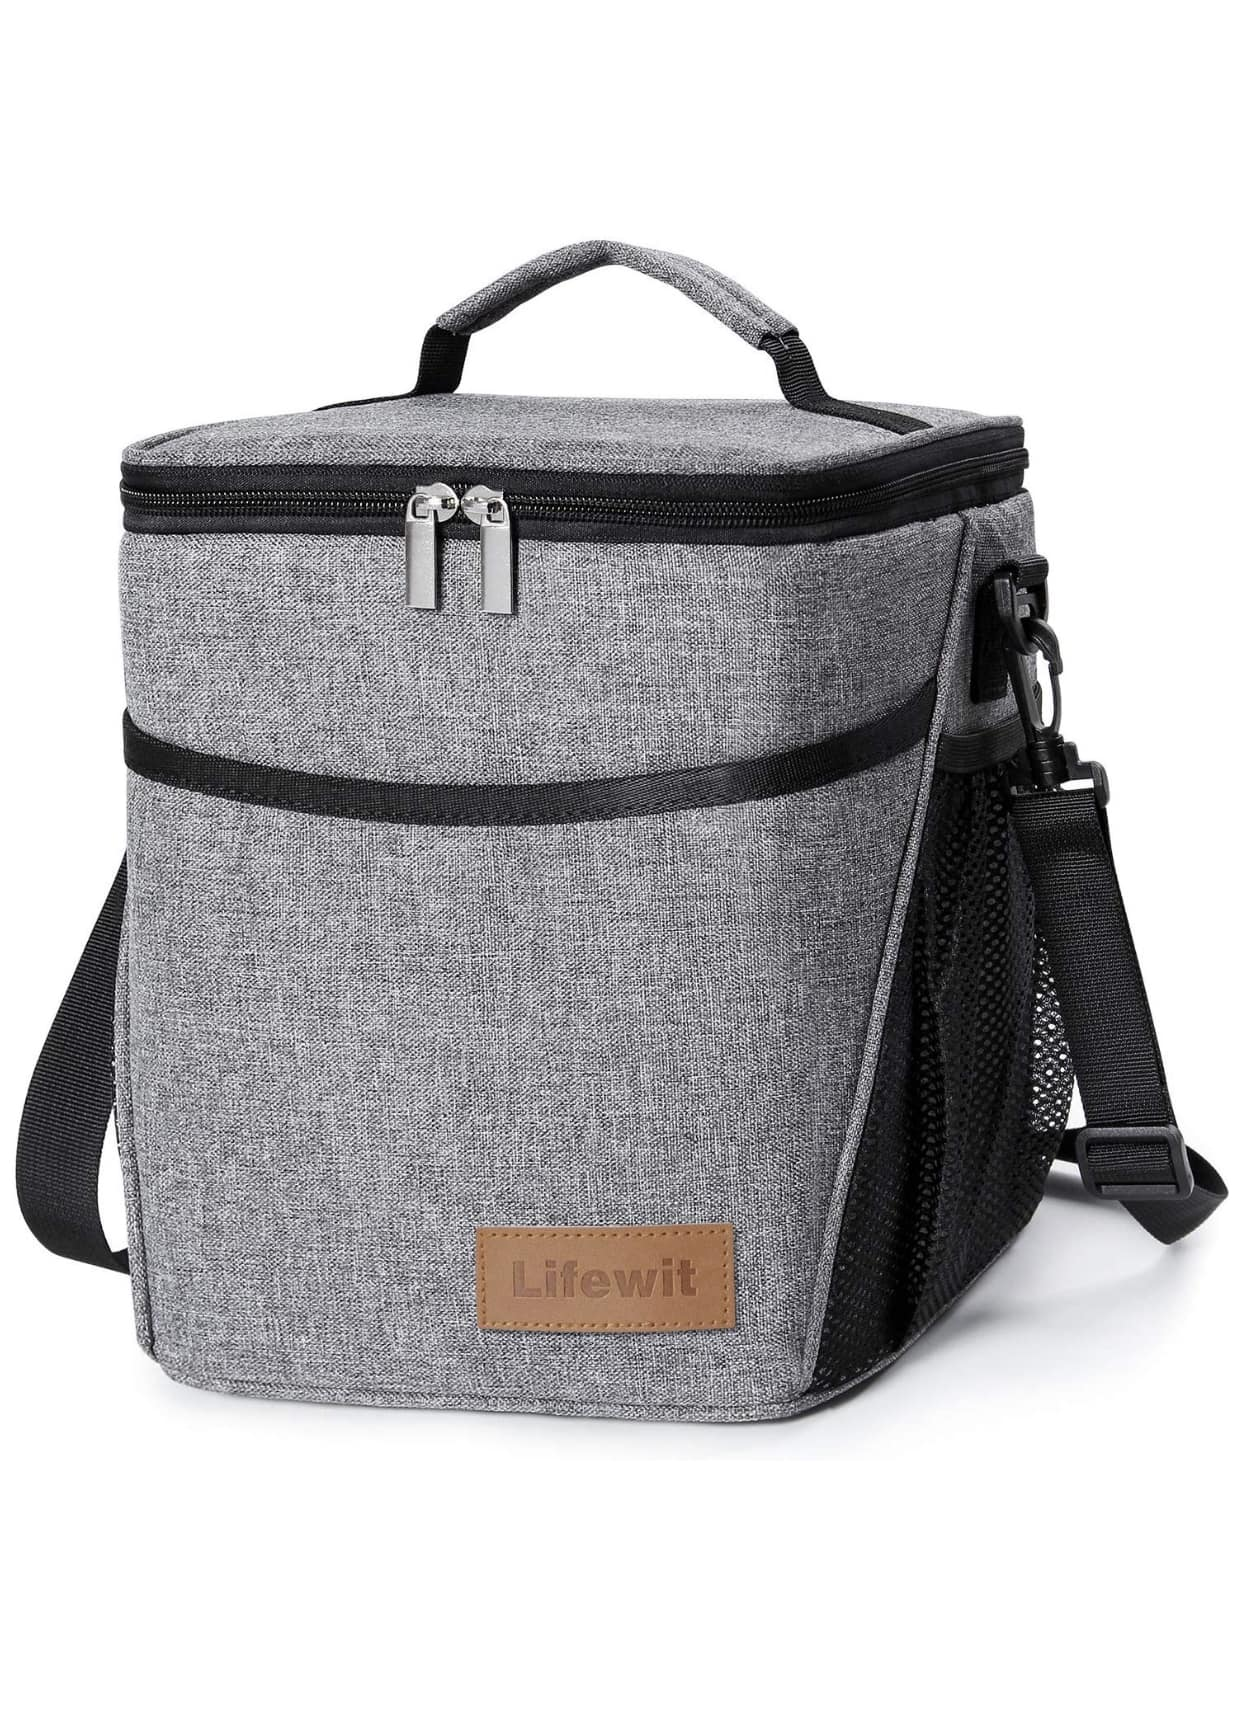 insulated lunch box lunch bag for adults 9l 12 can soft cooler bag water resistant. Black Bedroom Furniture Sets. Home Design Ideas